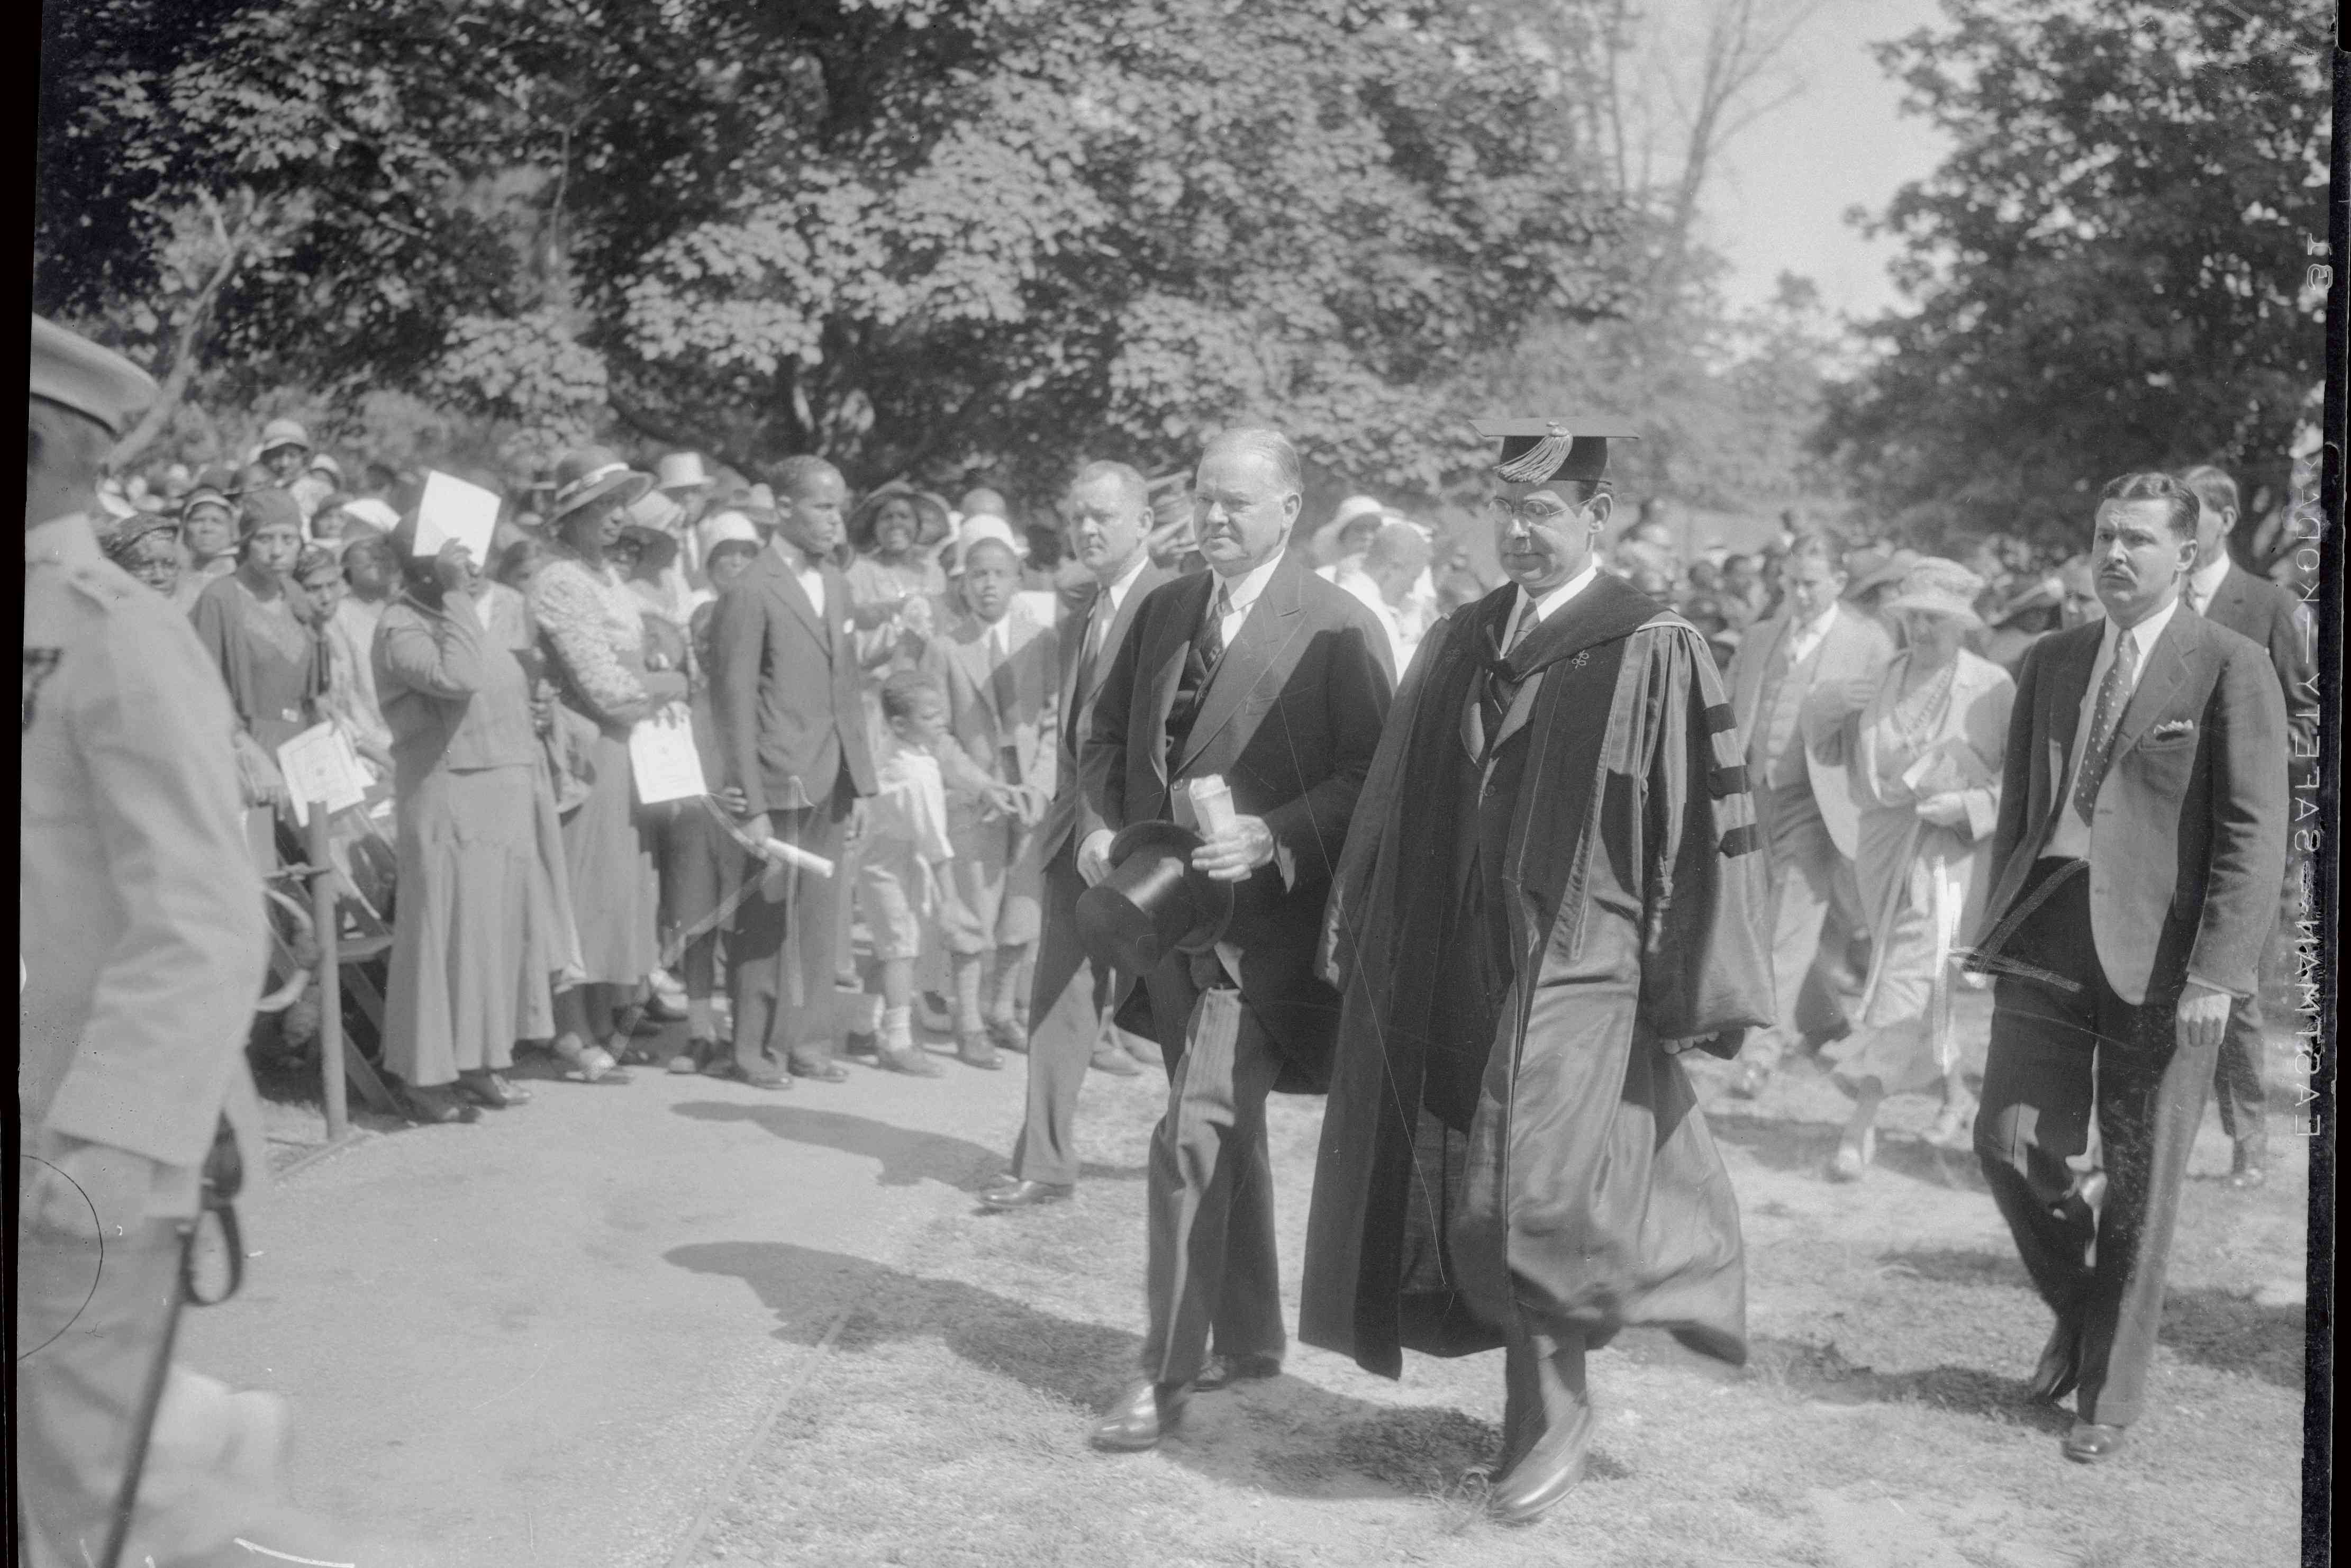 Dr. Mordecai Johnson wears graduation robe and cap while walking with President